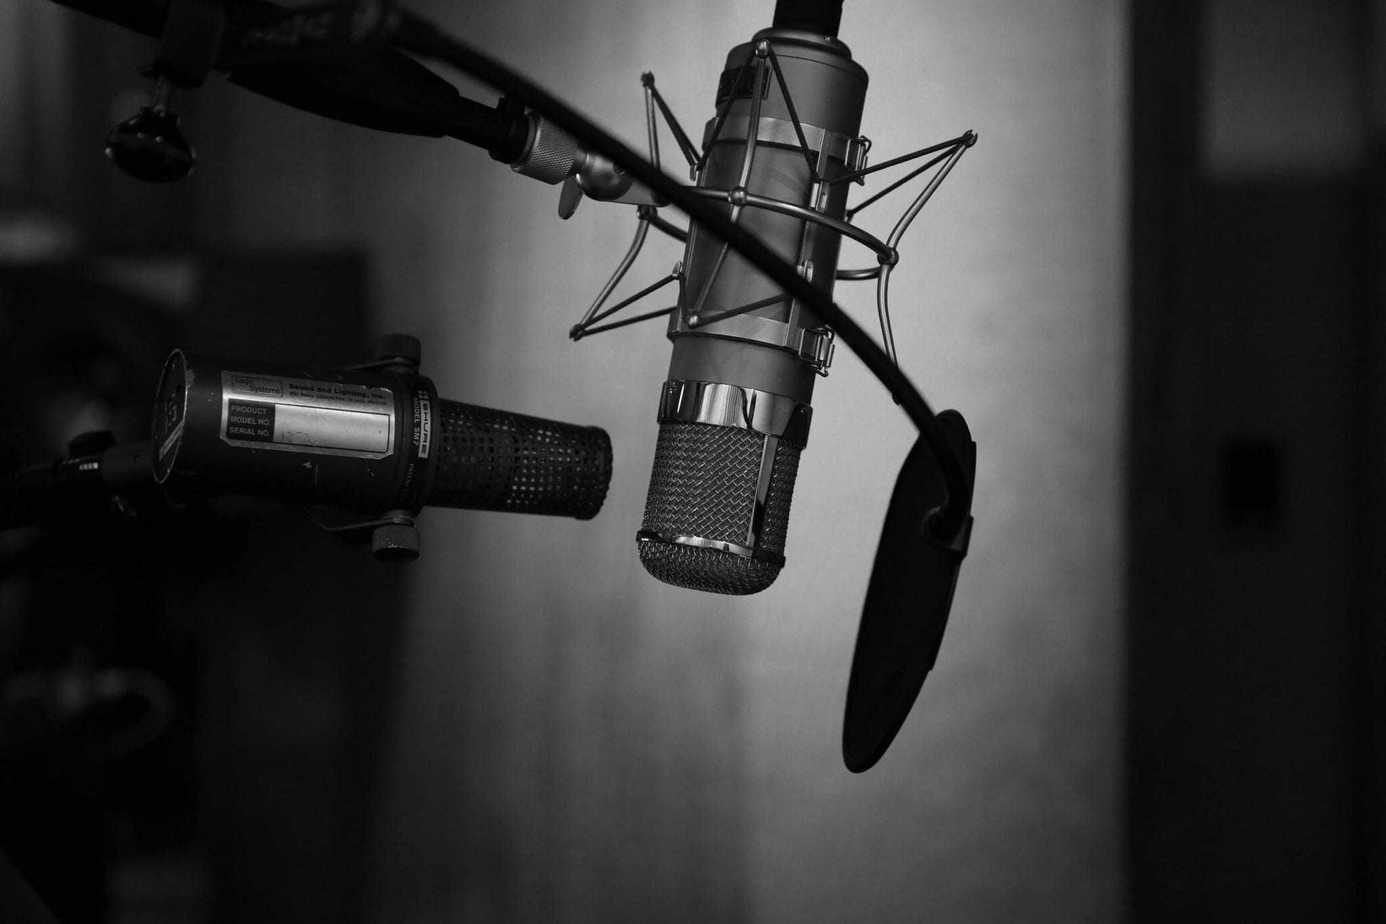 Best Podcast Equipment: Helping You Find the Best Podcast Gear 1